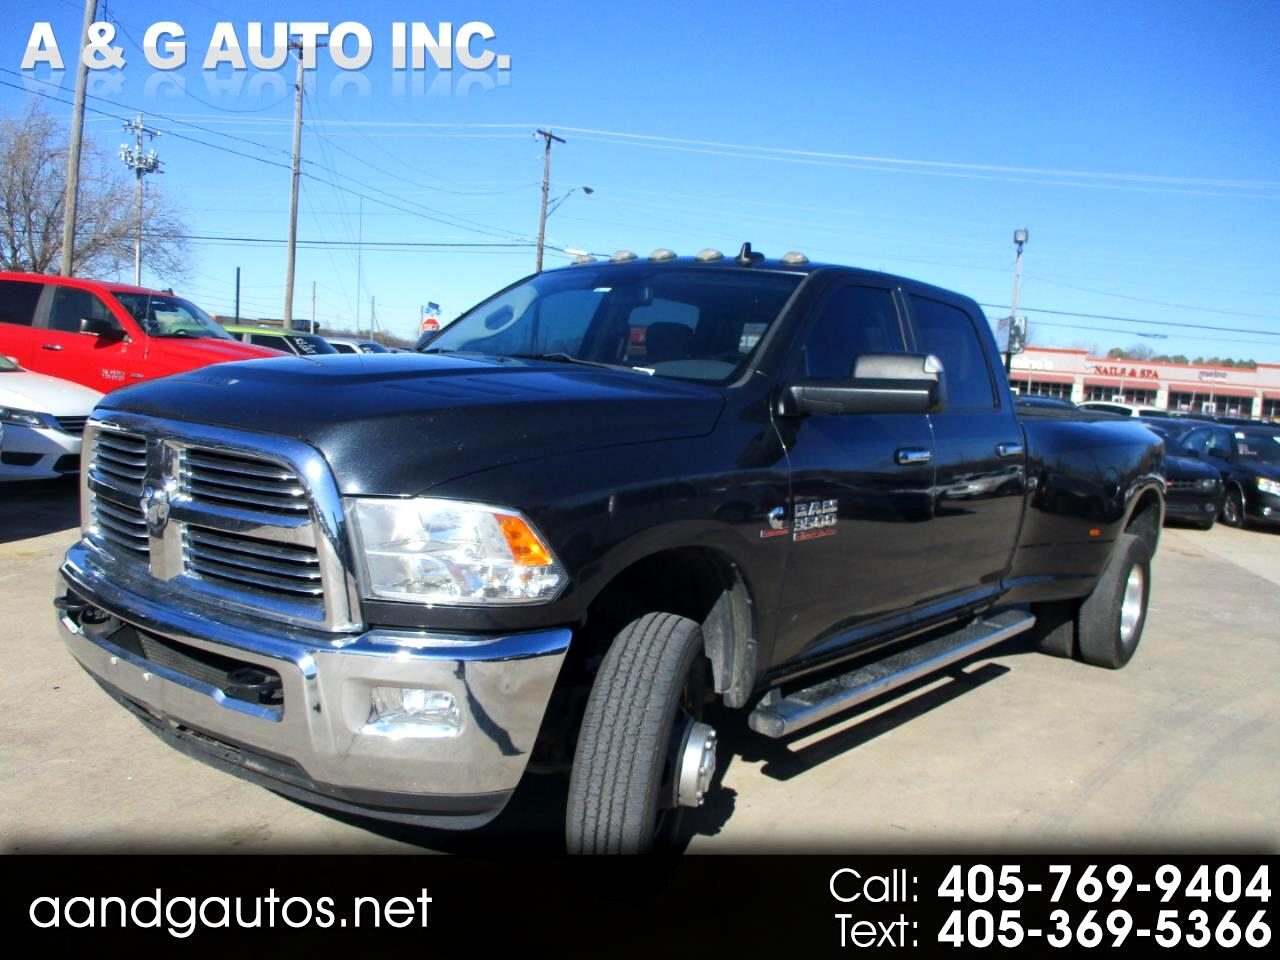 Dodge Ram 3500 SLT Quad Cab Long Bed 4WD DRW 2014